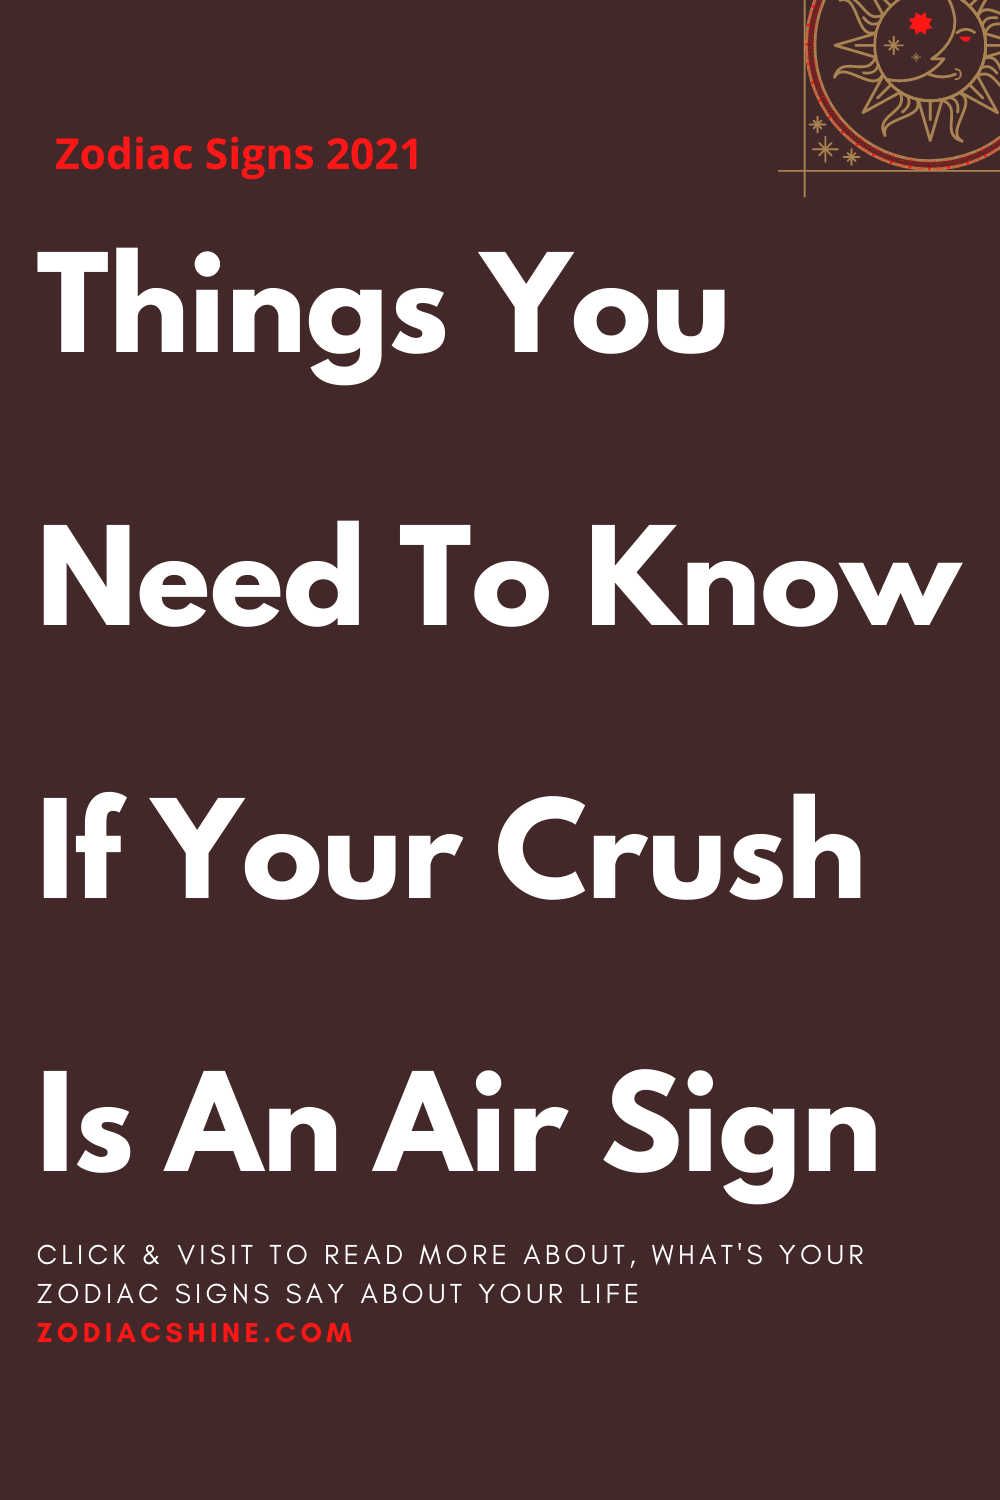 Things You Need To Know If Your Crush Is An Air Sign